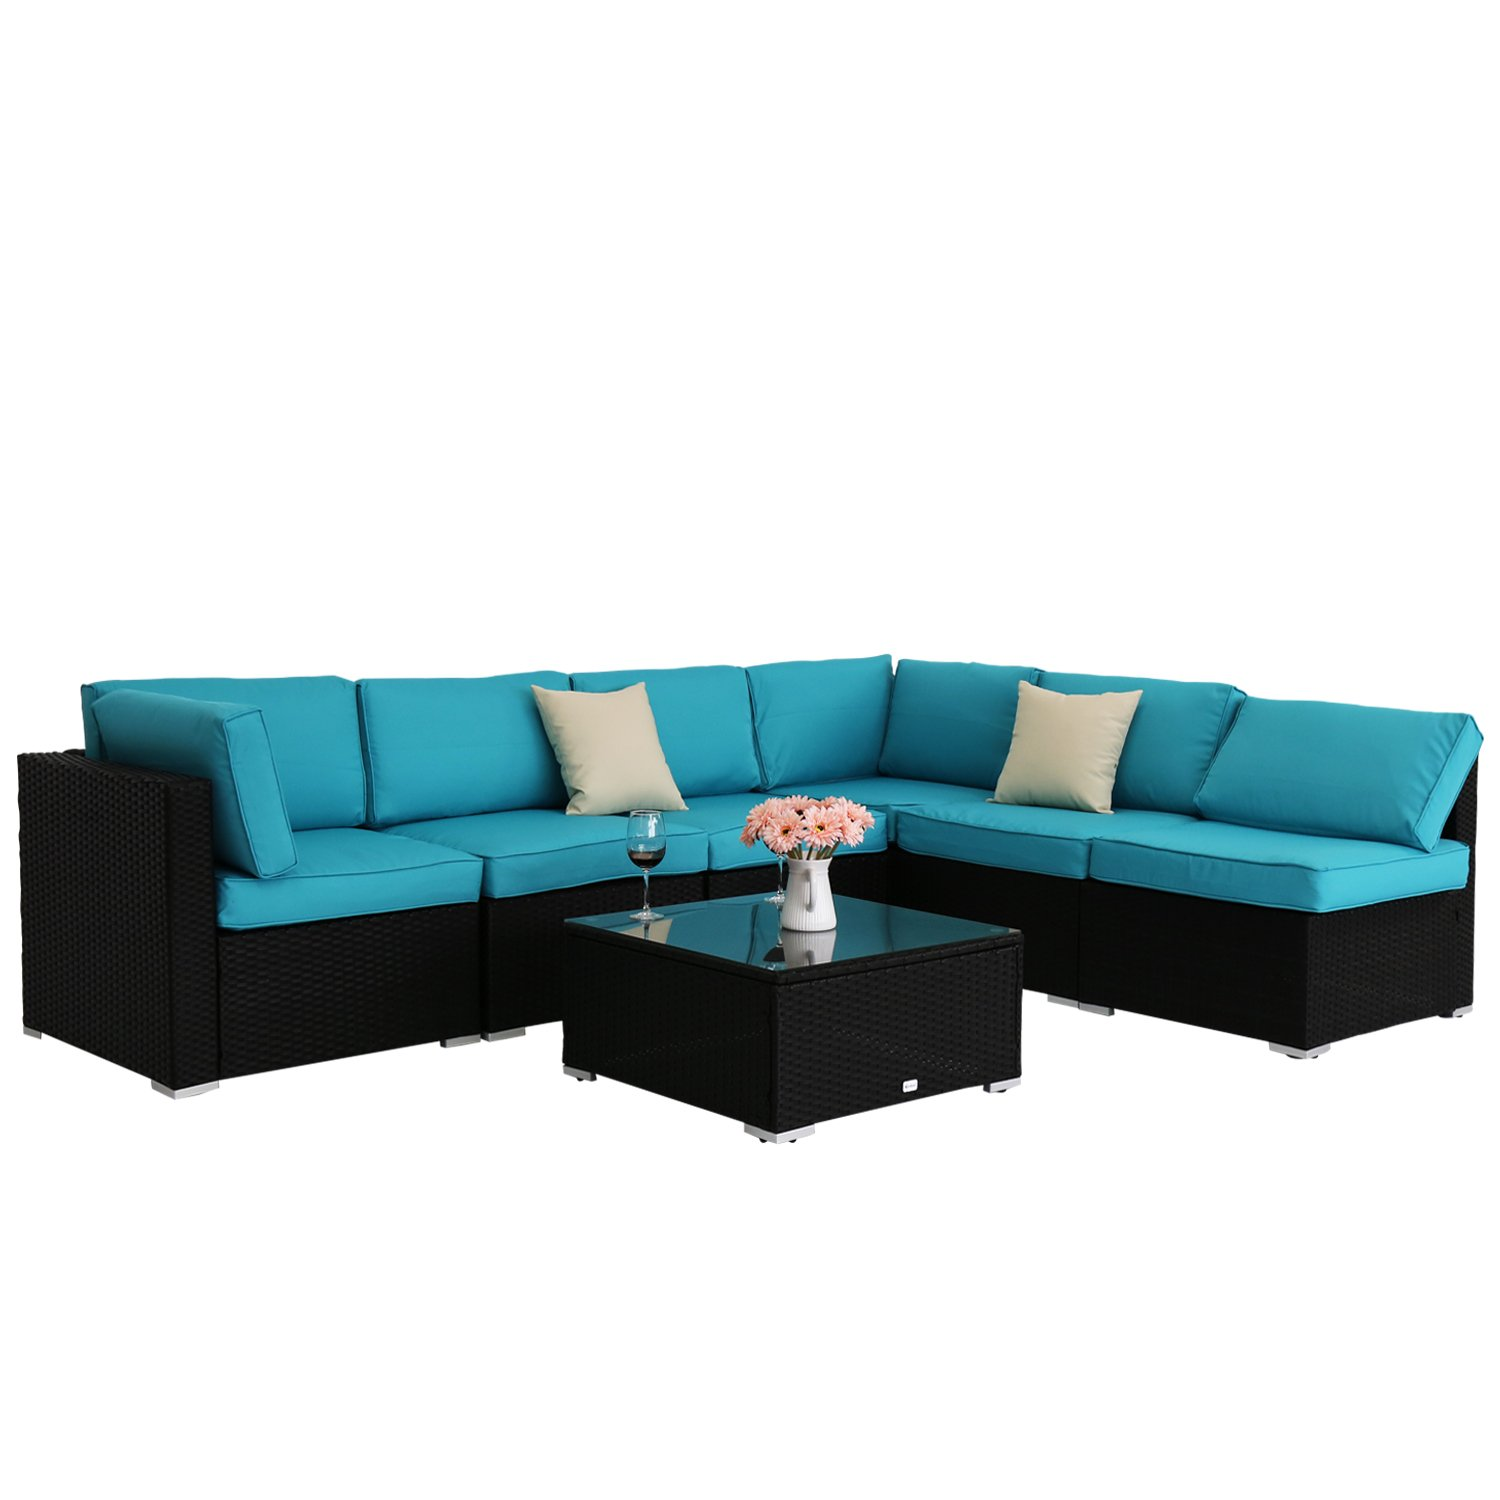 Peach Tree 7 PCs Outdoor Patio PE Rattan Wicker Sofa Sectional Furniture Set With 2 Pillows and Tea Table by Peachtree Press Inc (Image #7)